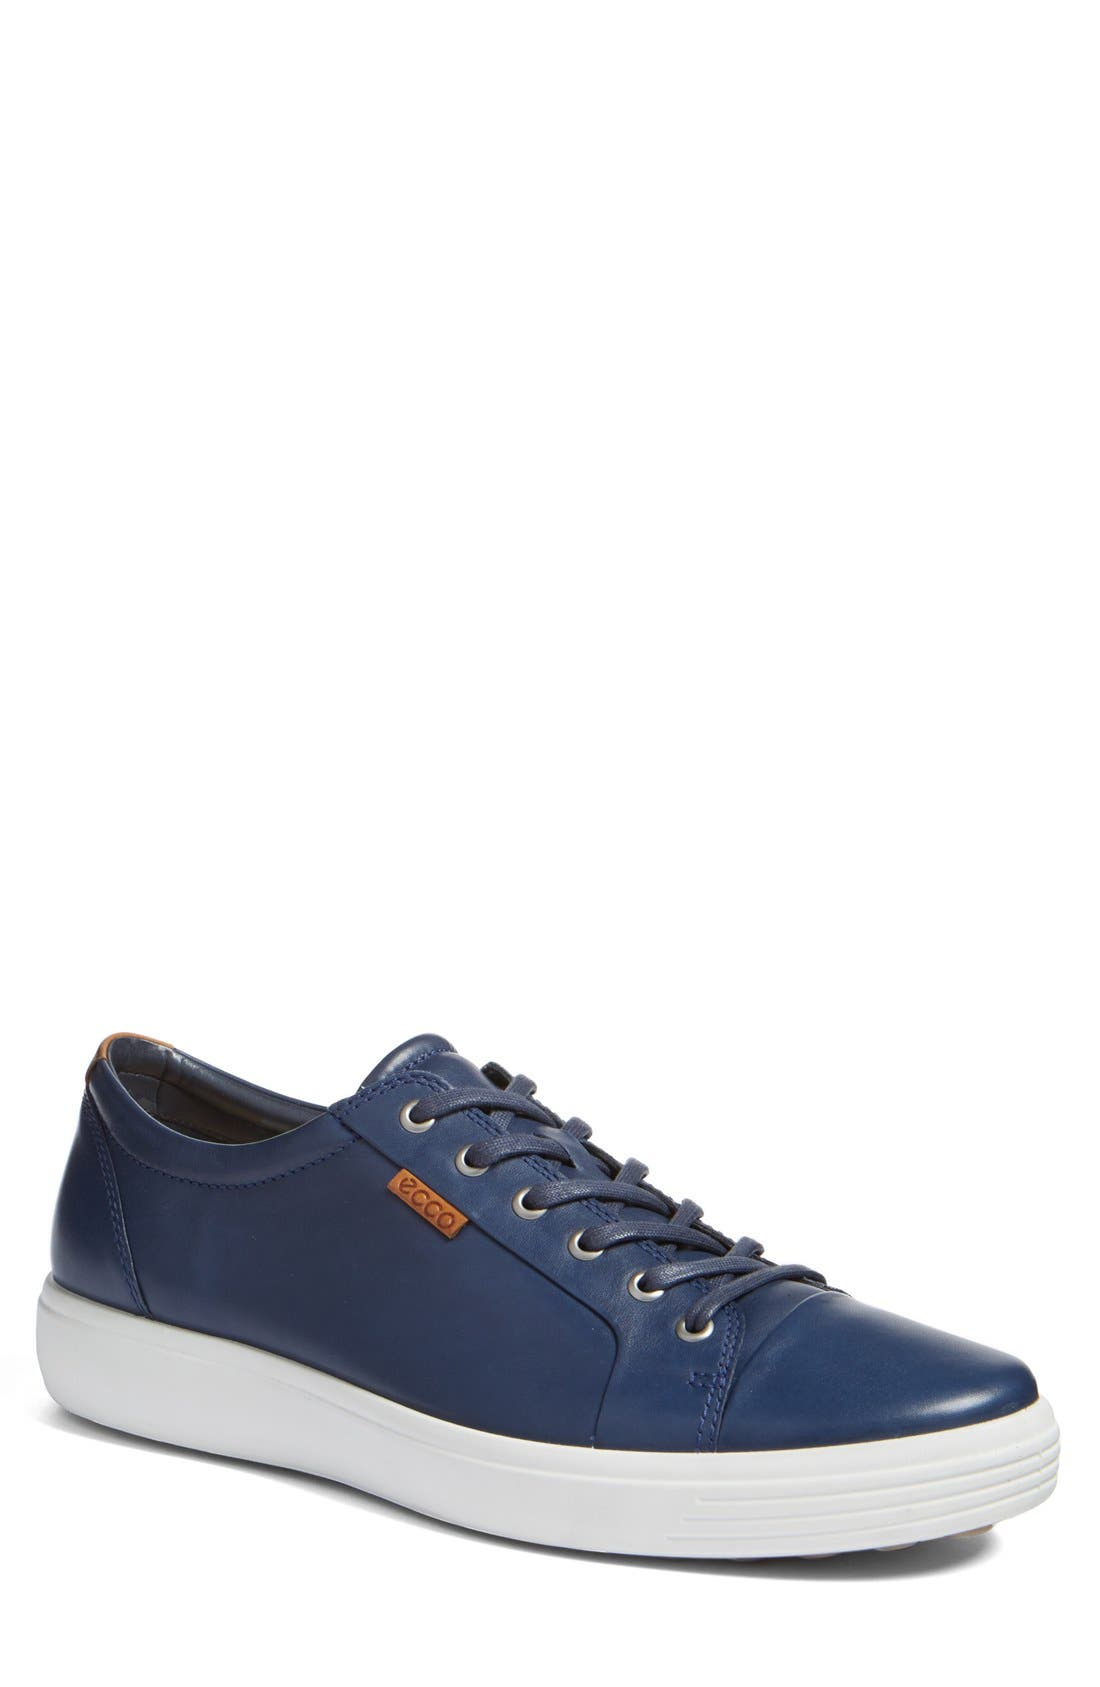 Soft VII Lace-Up Sneaker,                         Main,                         color, NAVY LEATHER